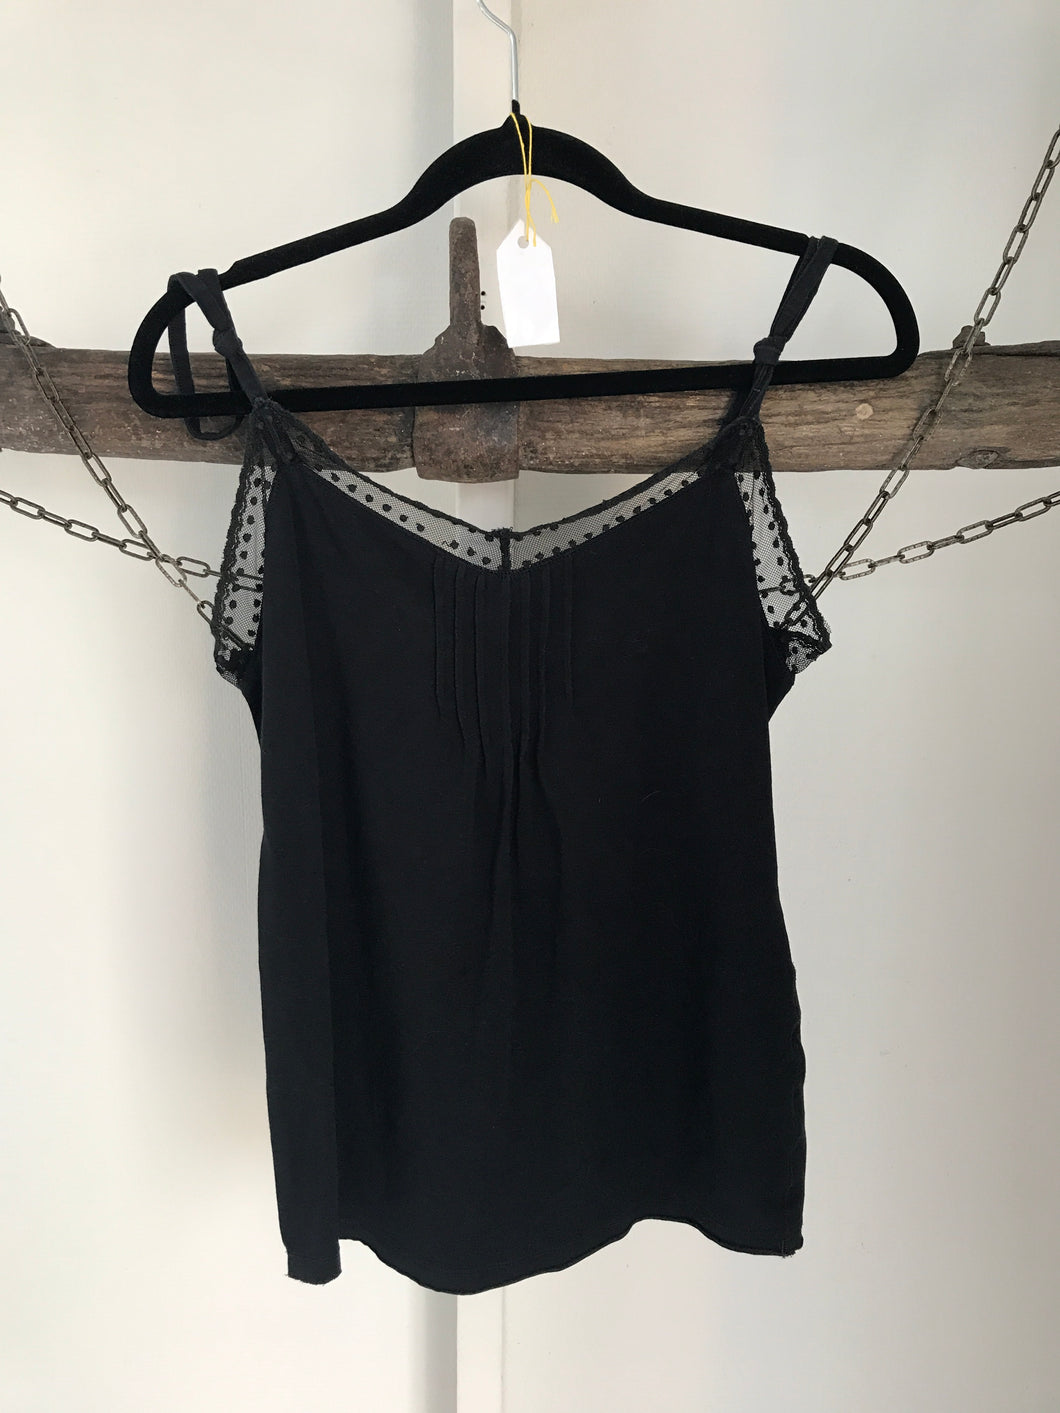 Just Jeans Black Lacey Singlet Top Size Small